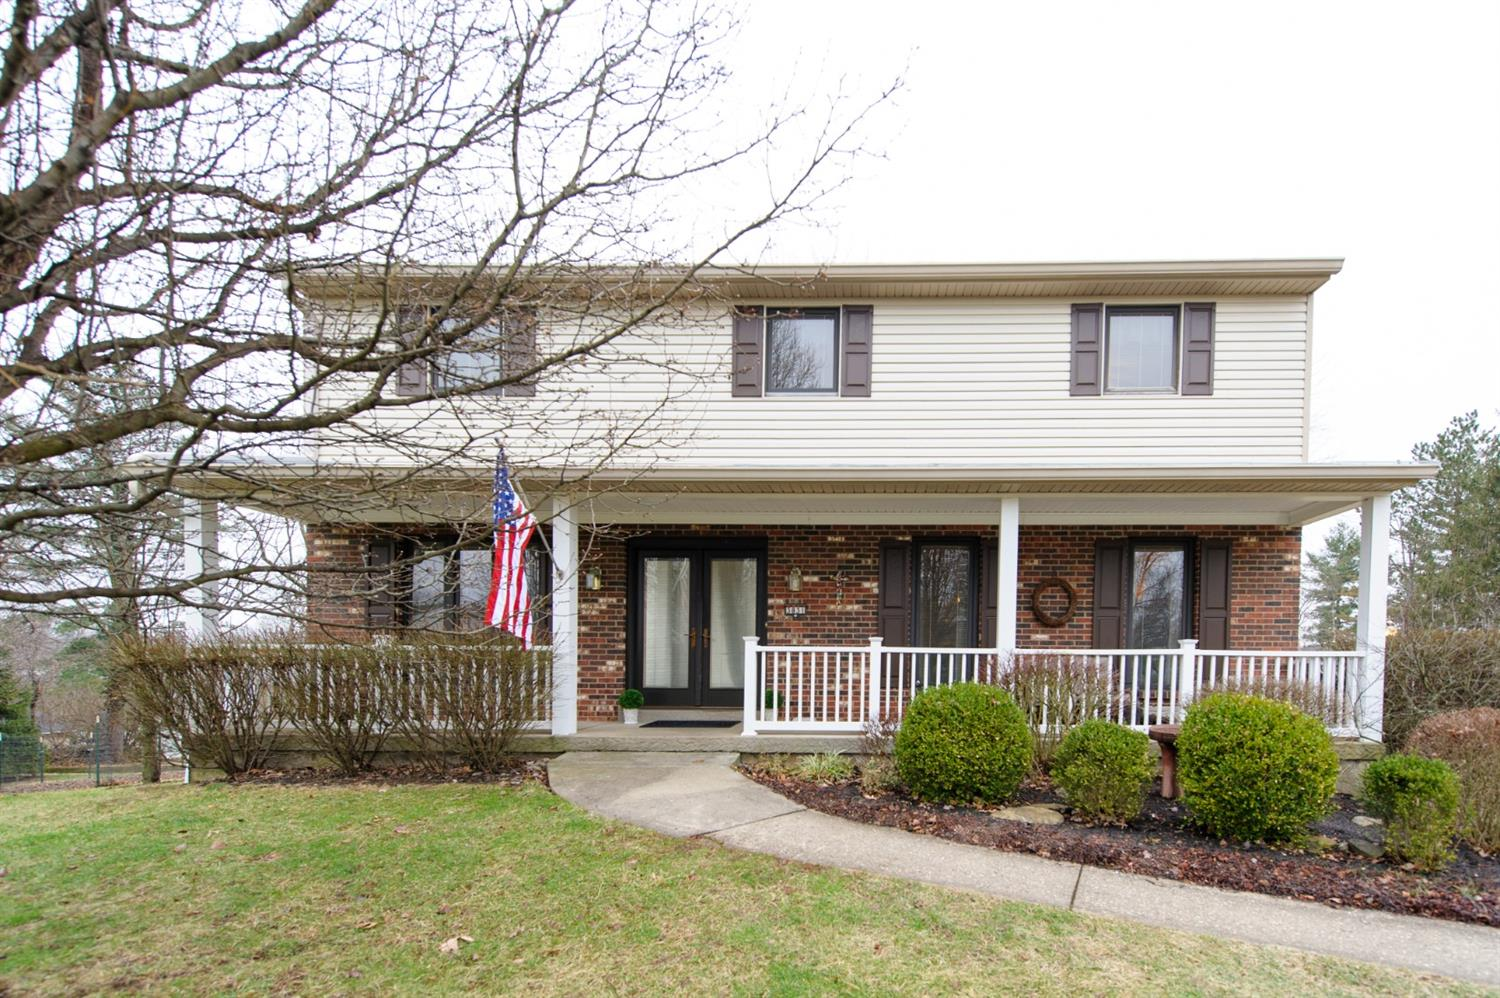 Photo 2 for 3831 Appletree Ct White Oak, OH 45247